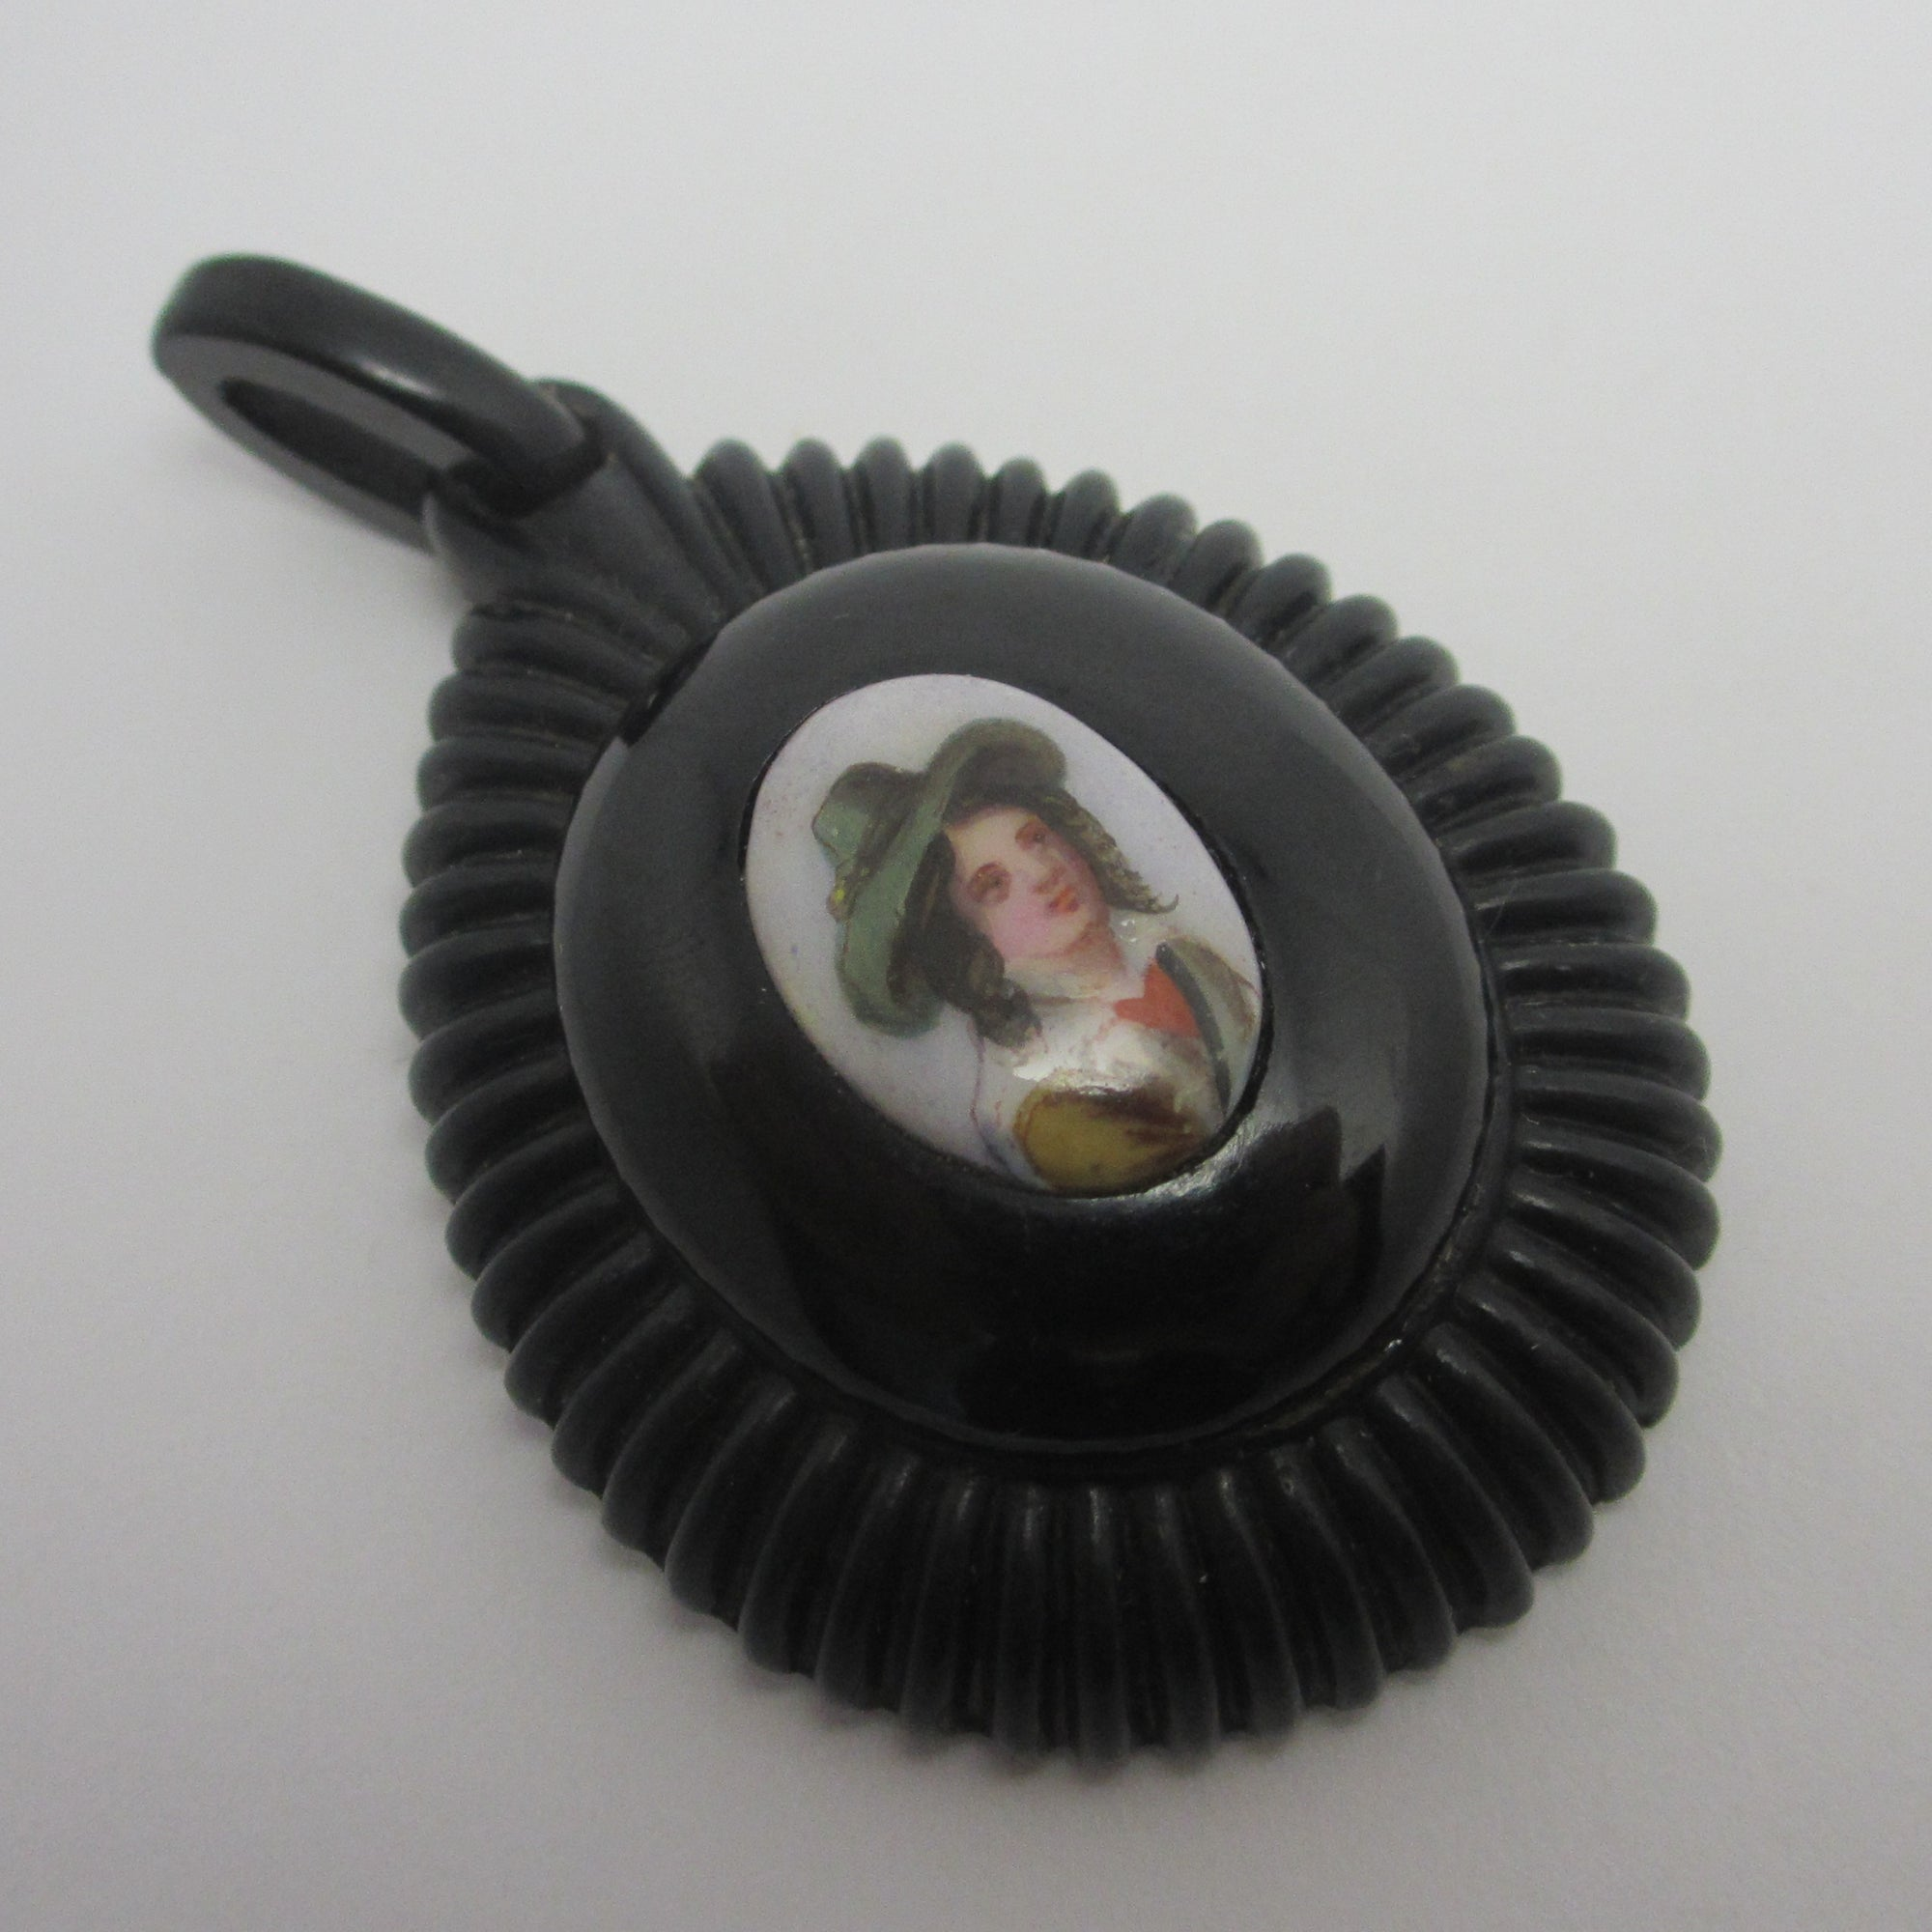 Miniature Portrait on Porcelain Whitby Jet Mourning Pendant Antique Victorian c1860